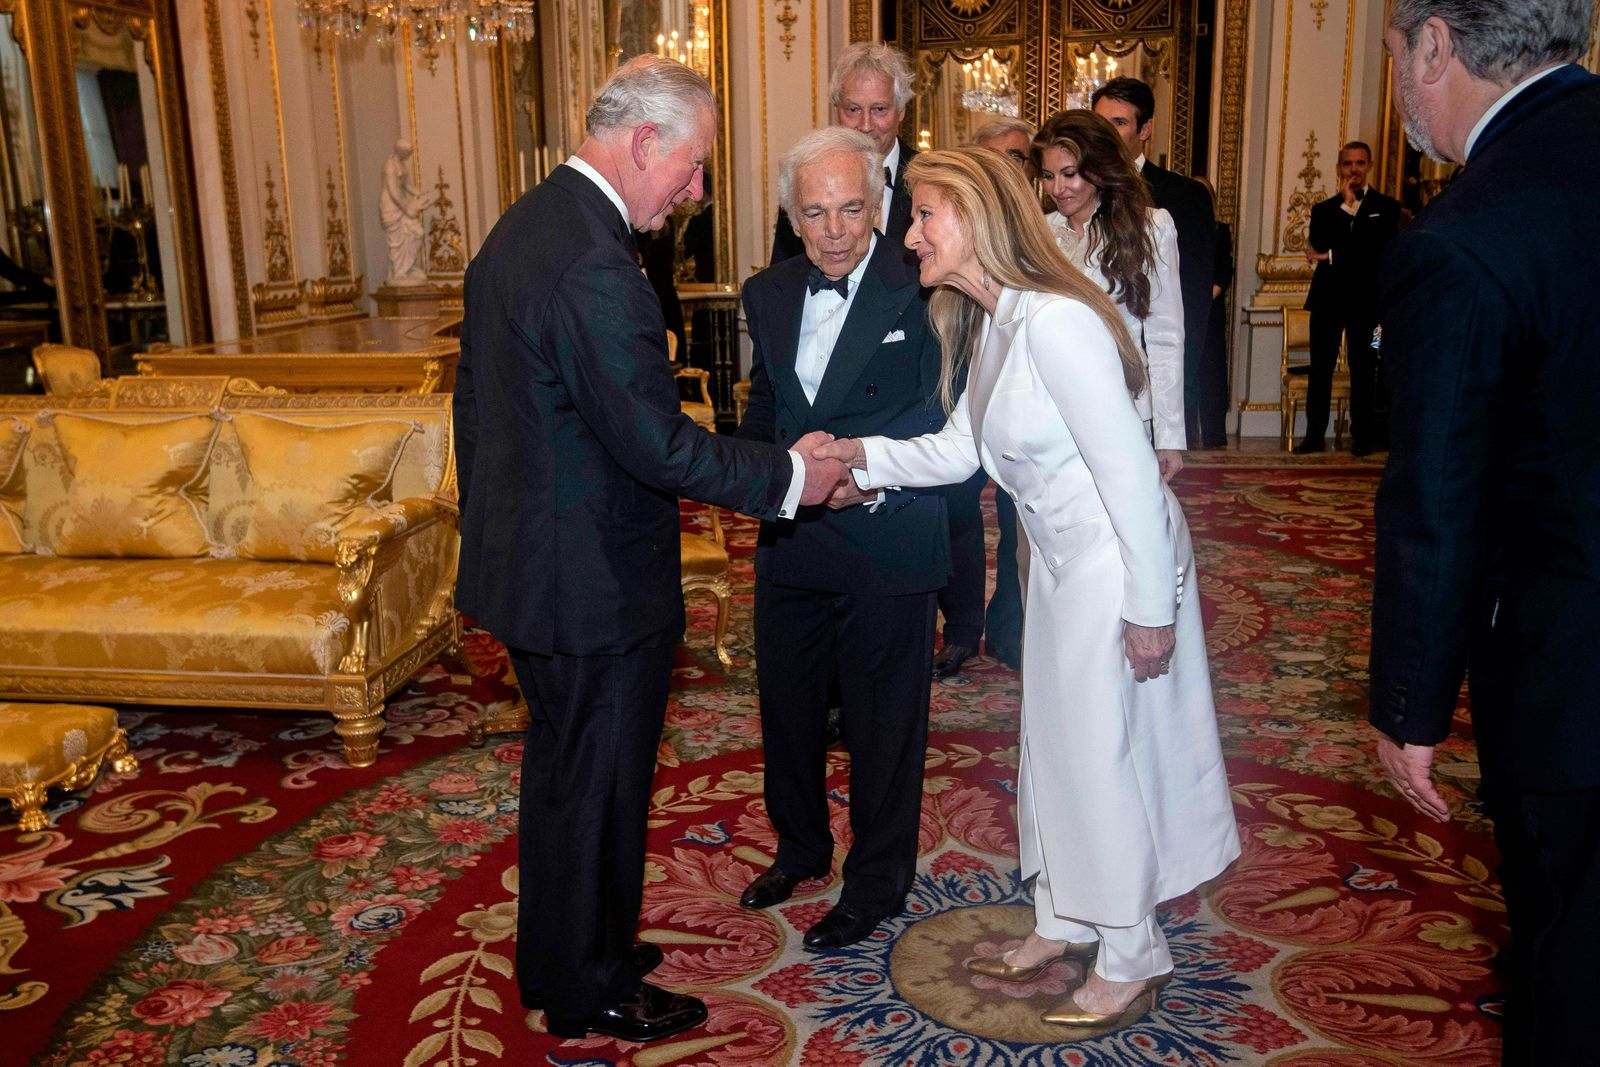 The Prince of Wales, designer Ralph Lauren, center, and his wife Ricky Lauren after he was presented with his honorary KBE (Knight Commander of the Order of the British Empire) for Services to Fashion in a private ceremony at Buckingham Palace Wednesday June 19, 2019.  (Victoria Jones/PA via AP)